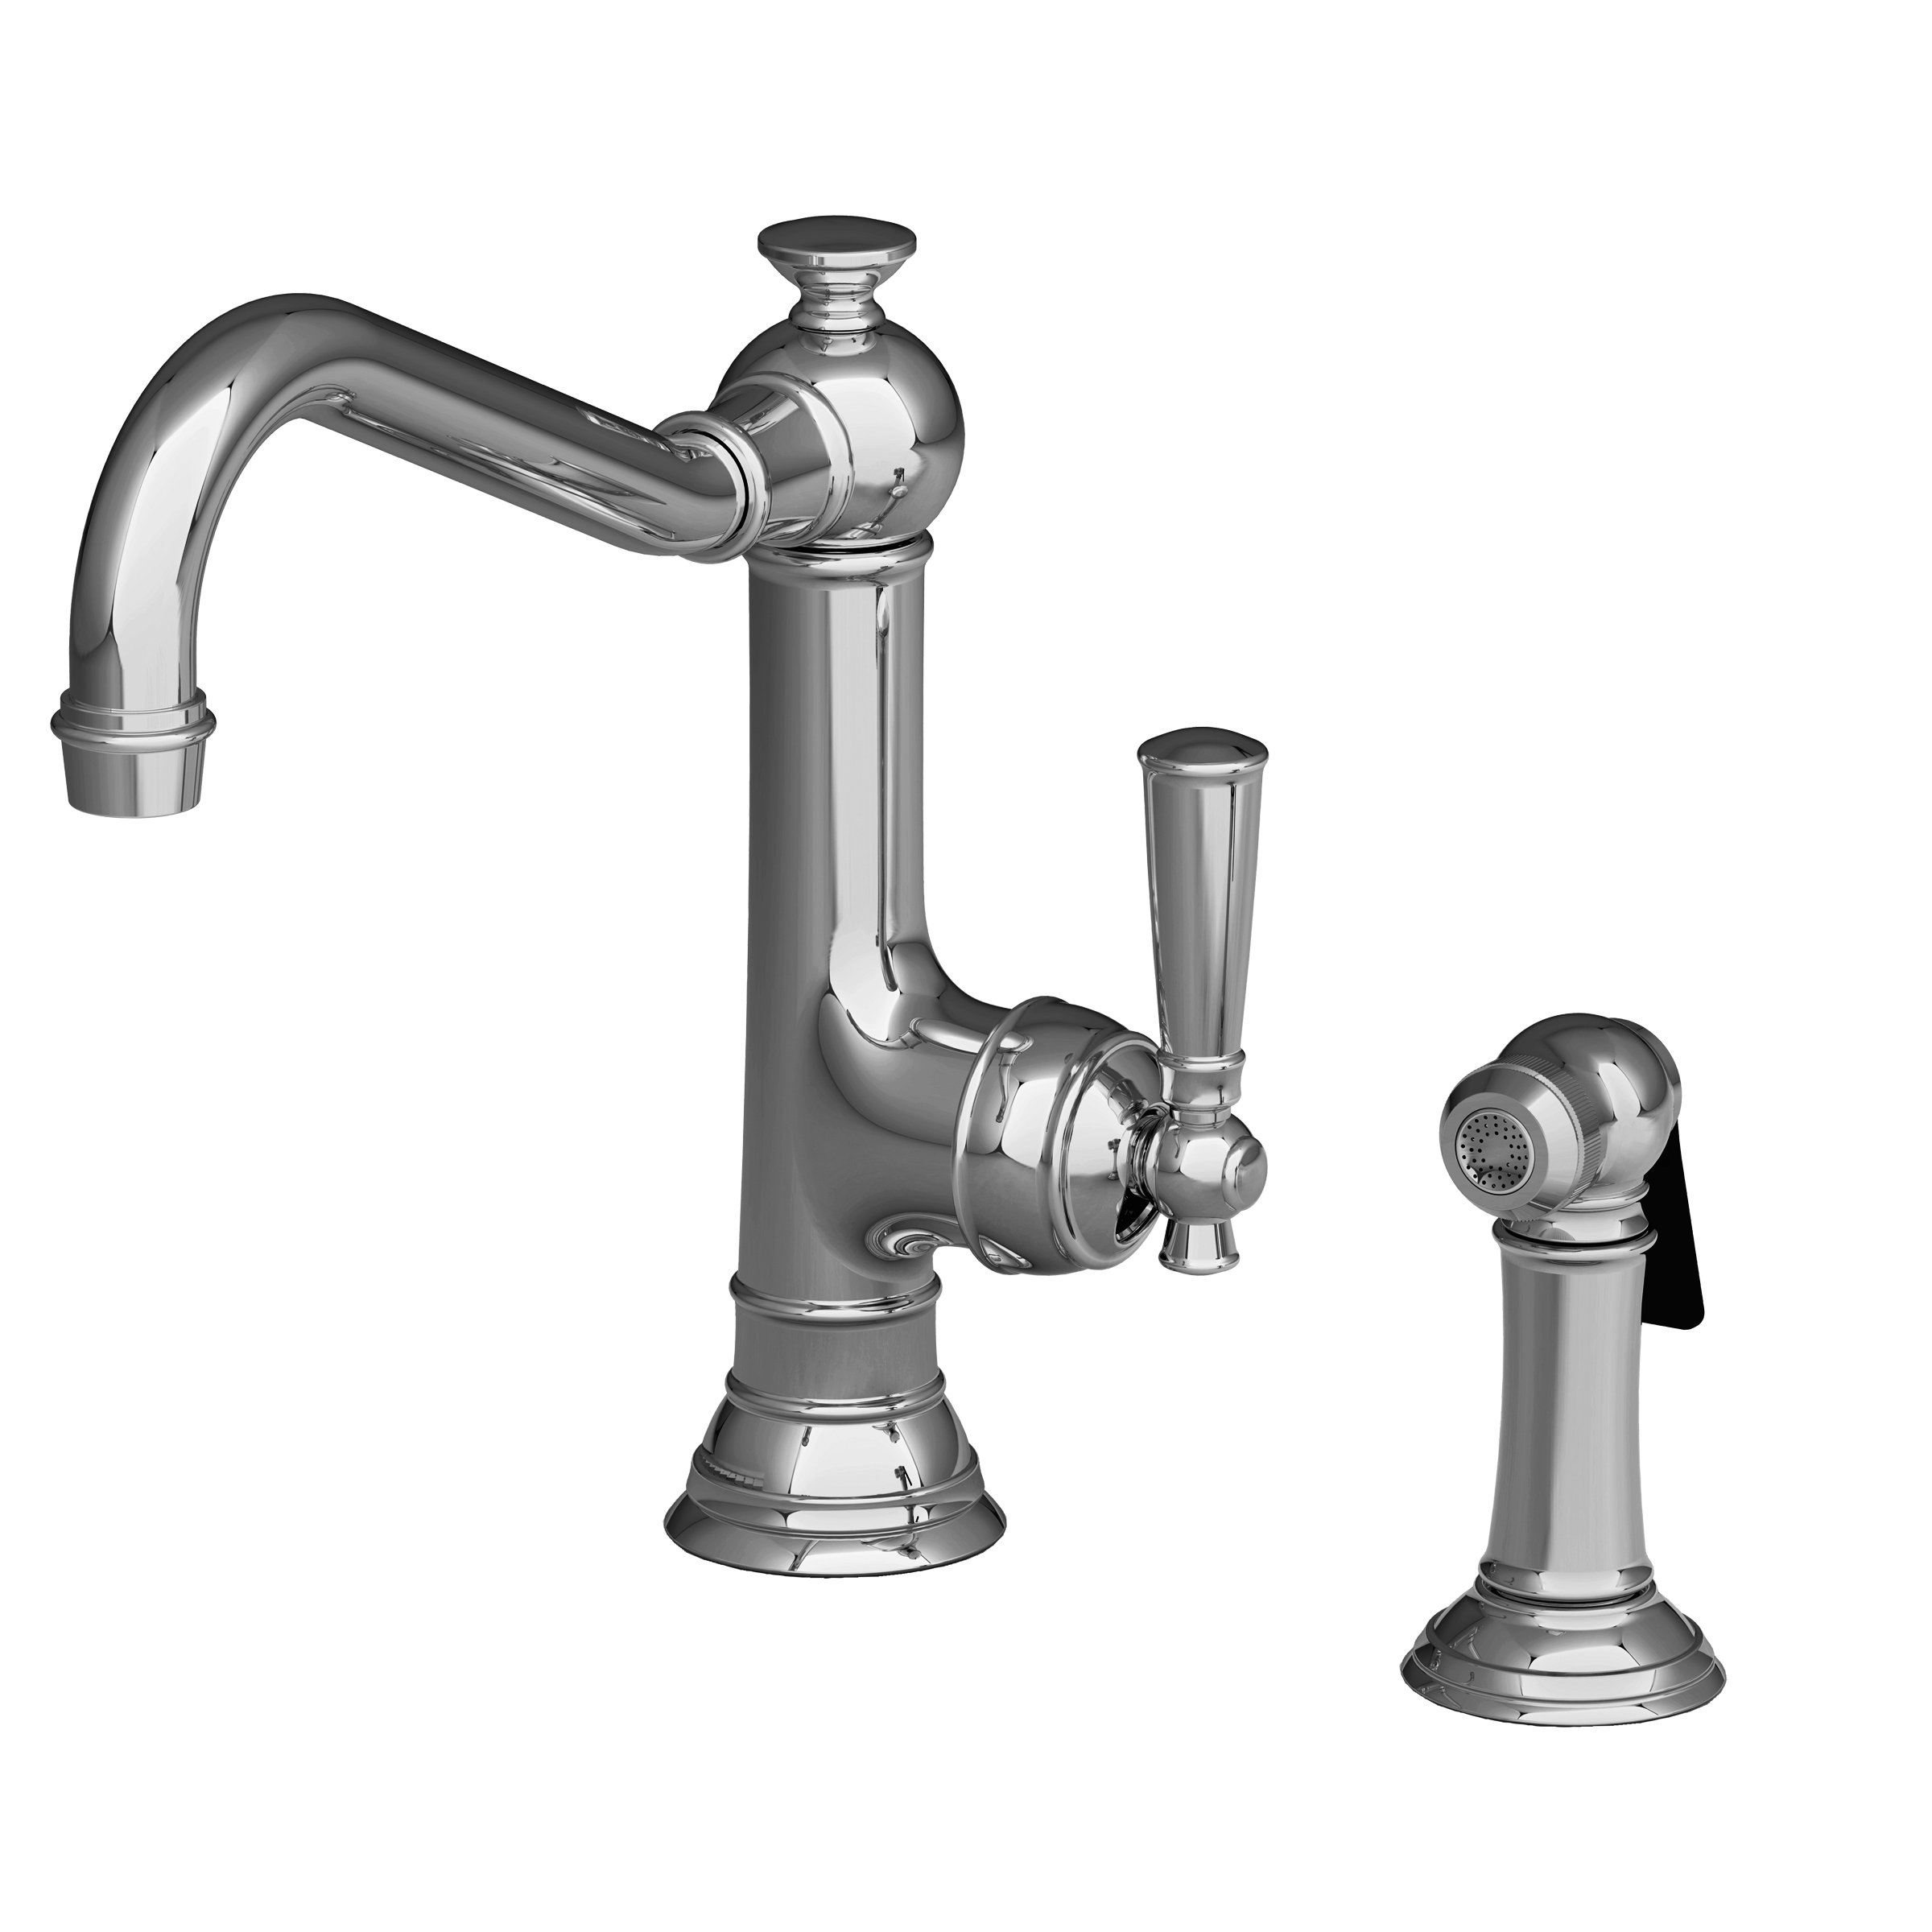 Newport Brass Faucets Newport Brass 106c East Linear Single Handle Cold Water Dispenser